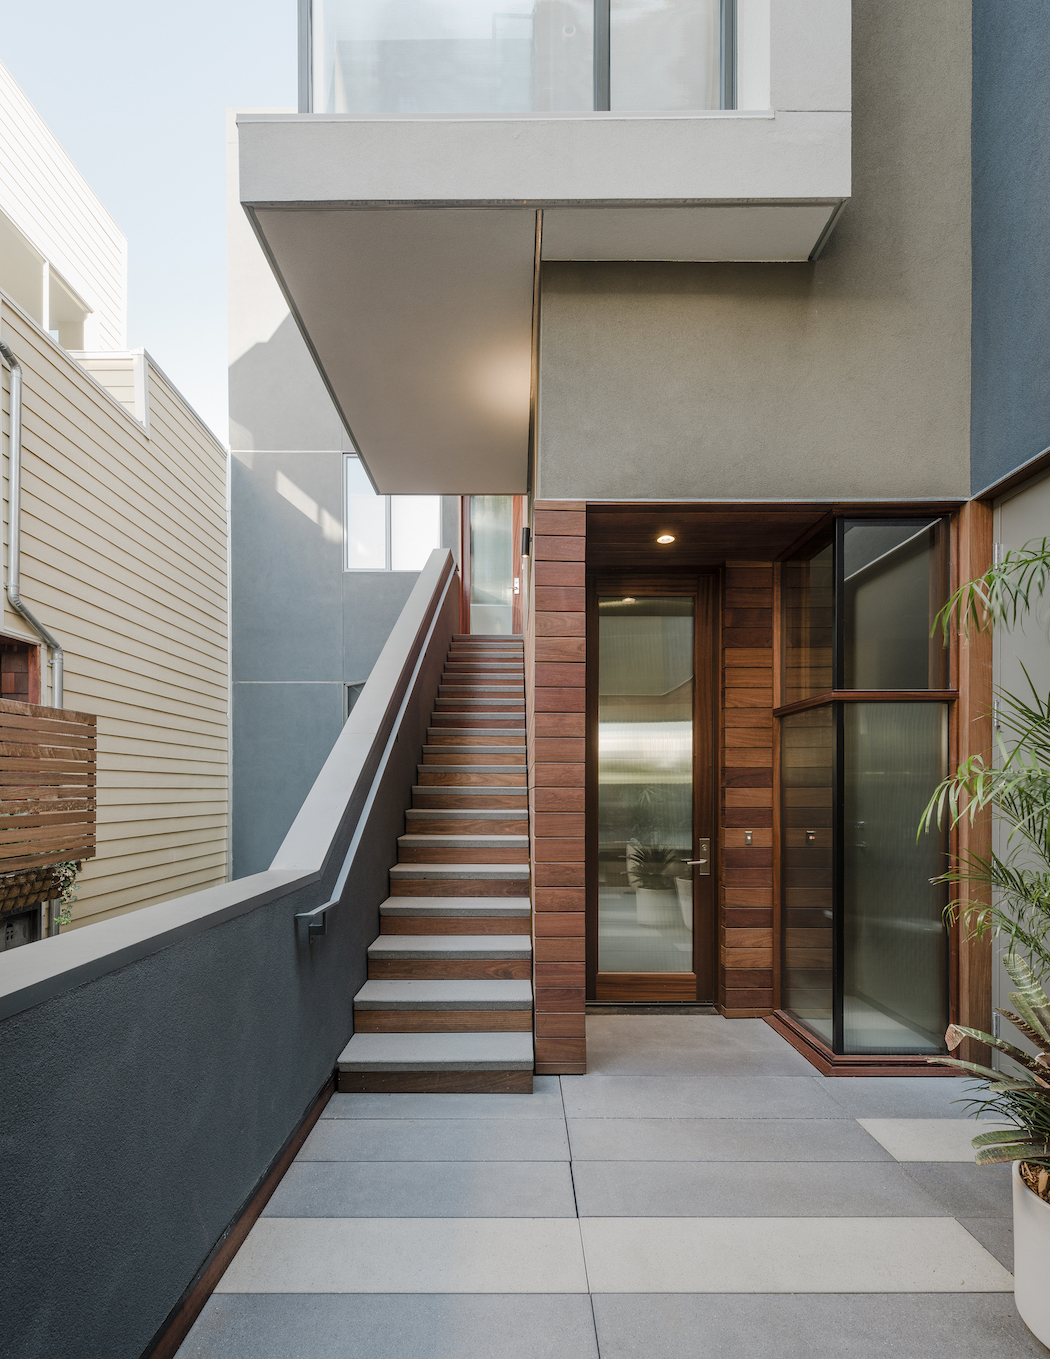 Albion Street Residences - Kennerly Architecture & Planning 3